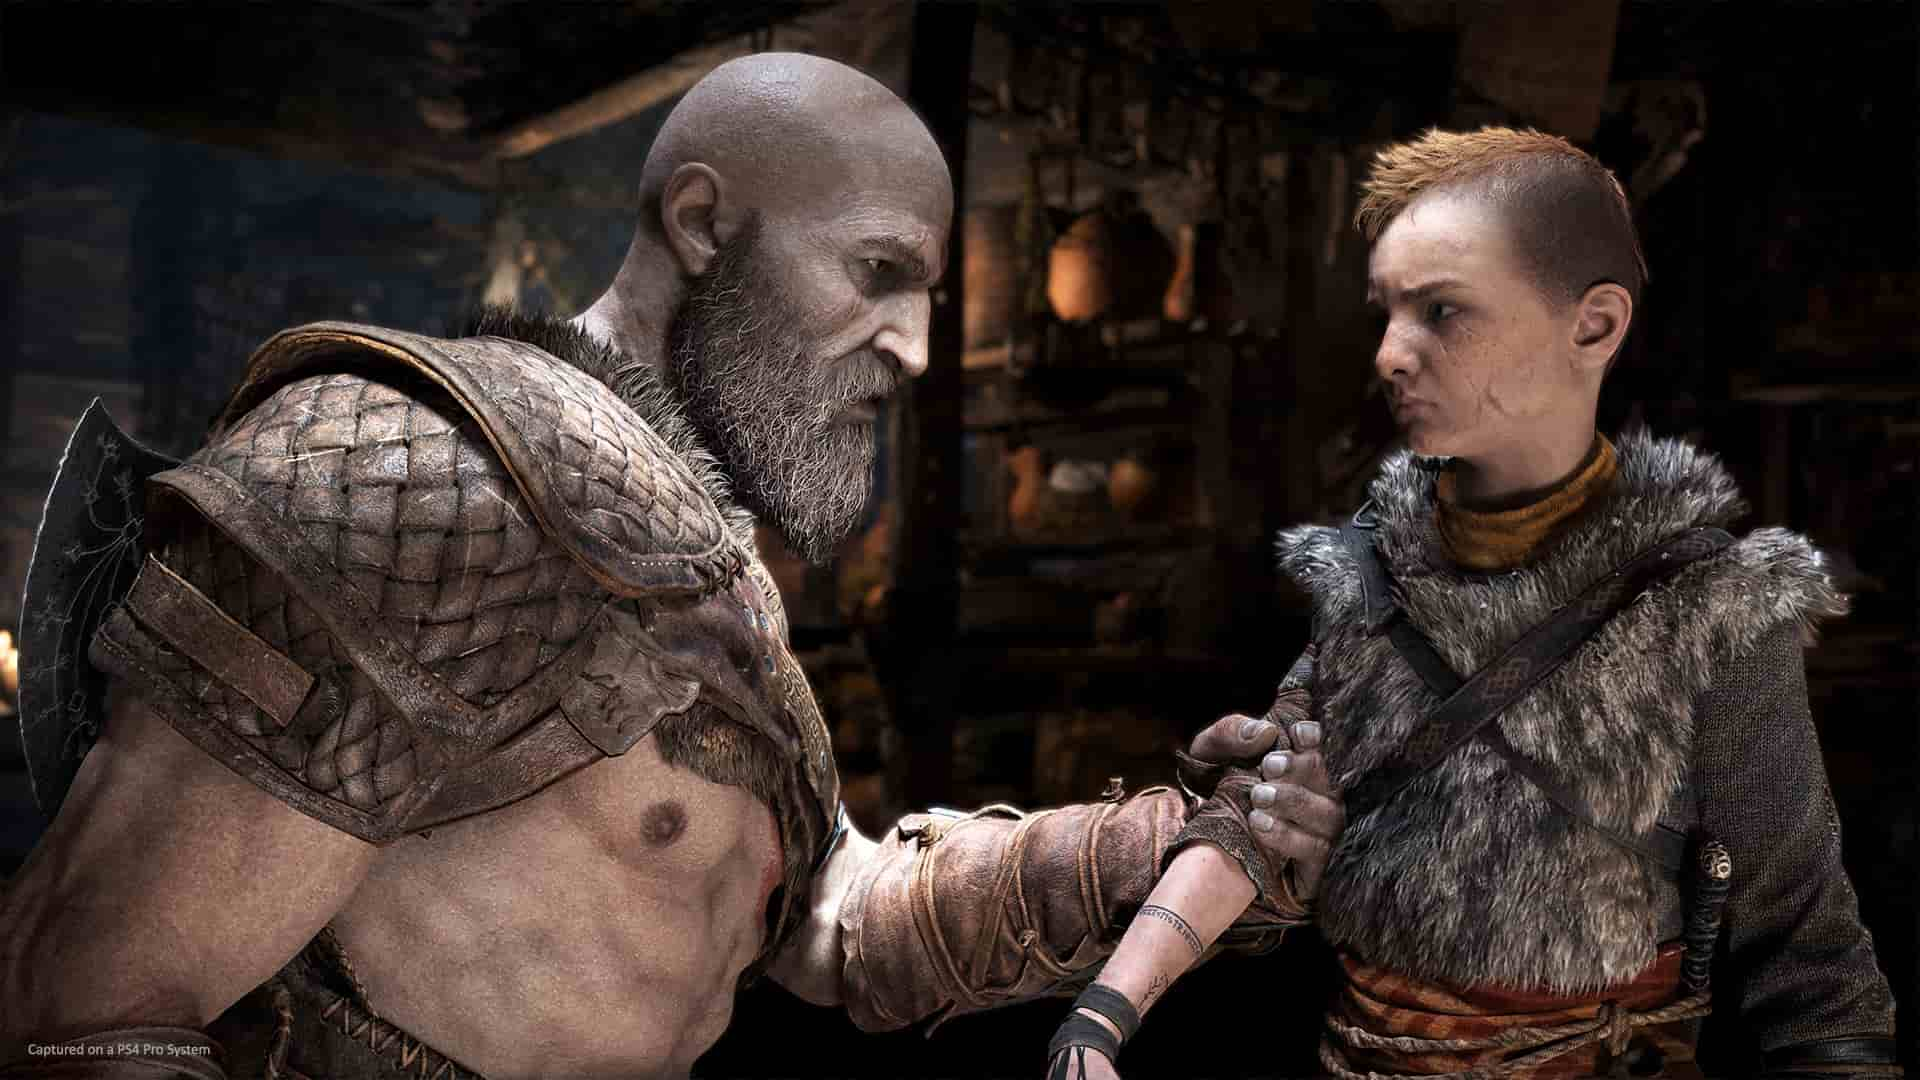 God of War Sales Take Top Spot on UK Charts